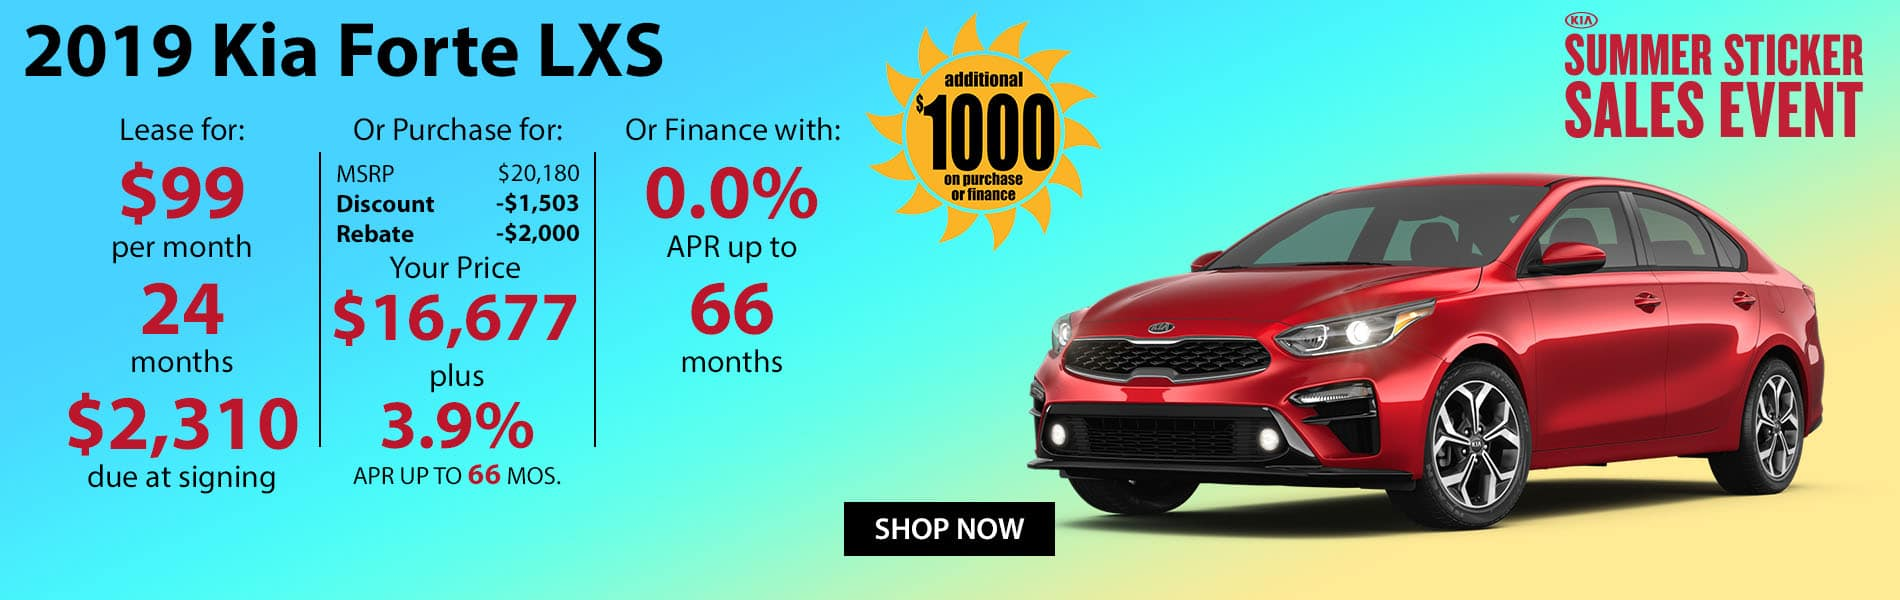 Lease a 2019 Kia Forte LXS for $99 per month or finance with 0% APR up to 66 months